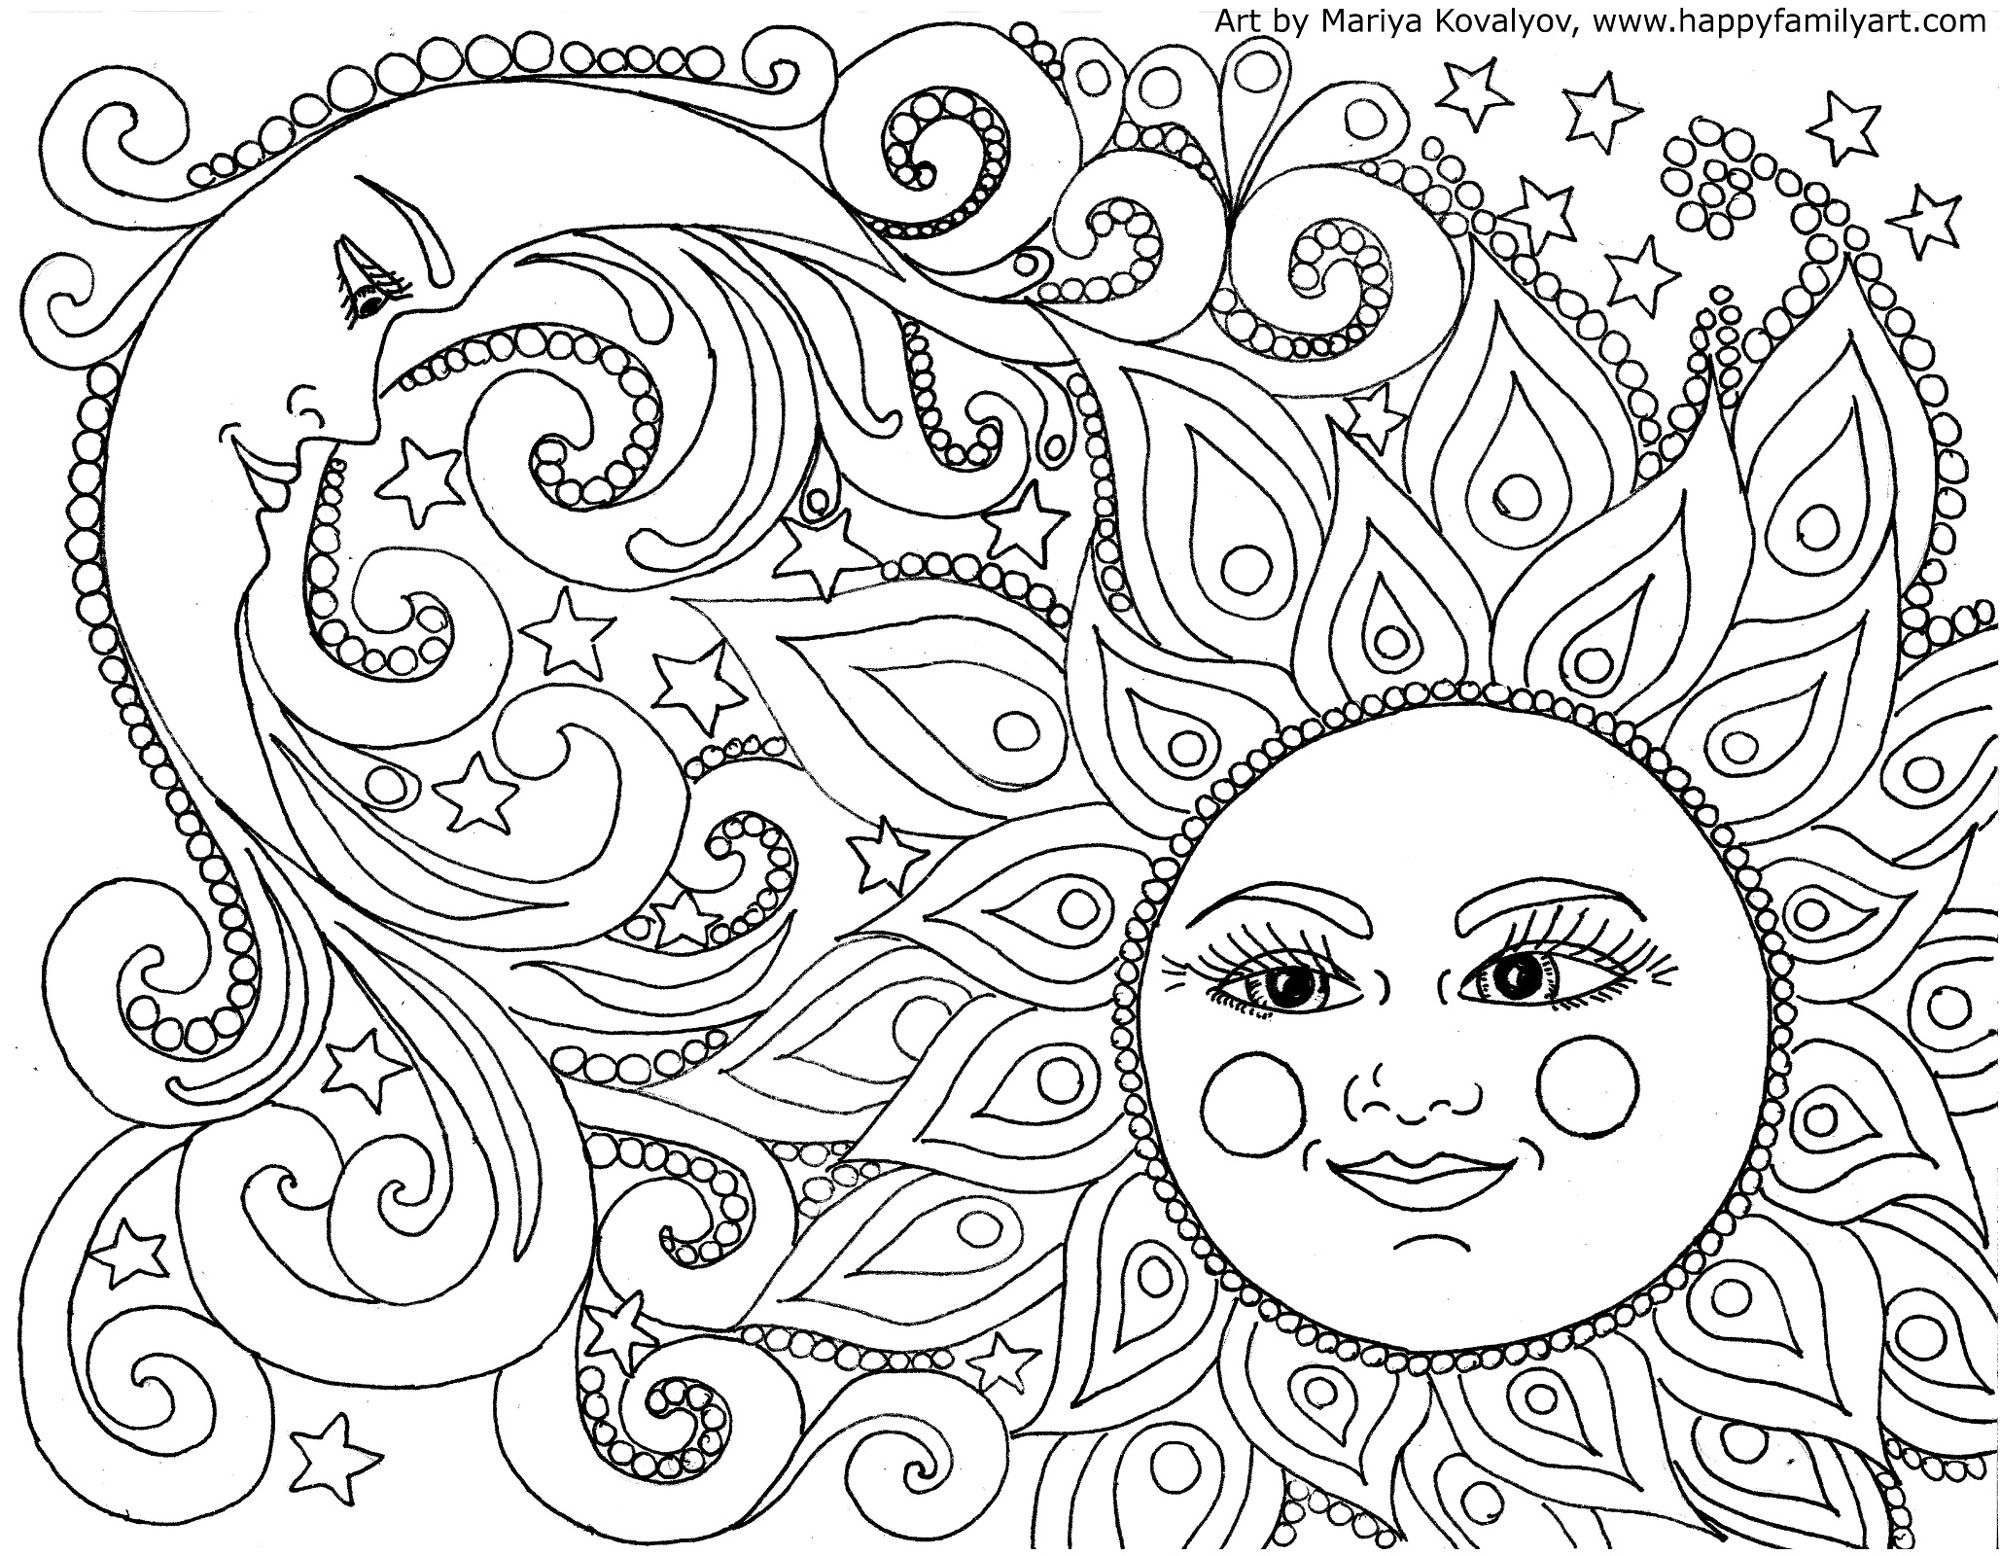 Abstract Coloring Pages For Adults And Artists